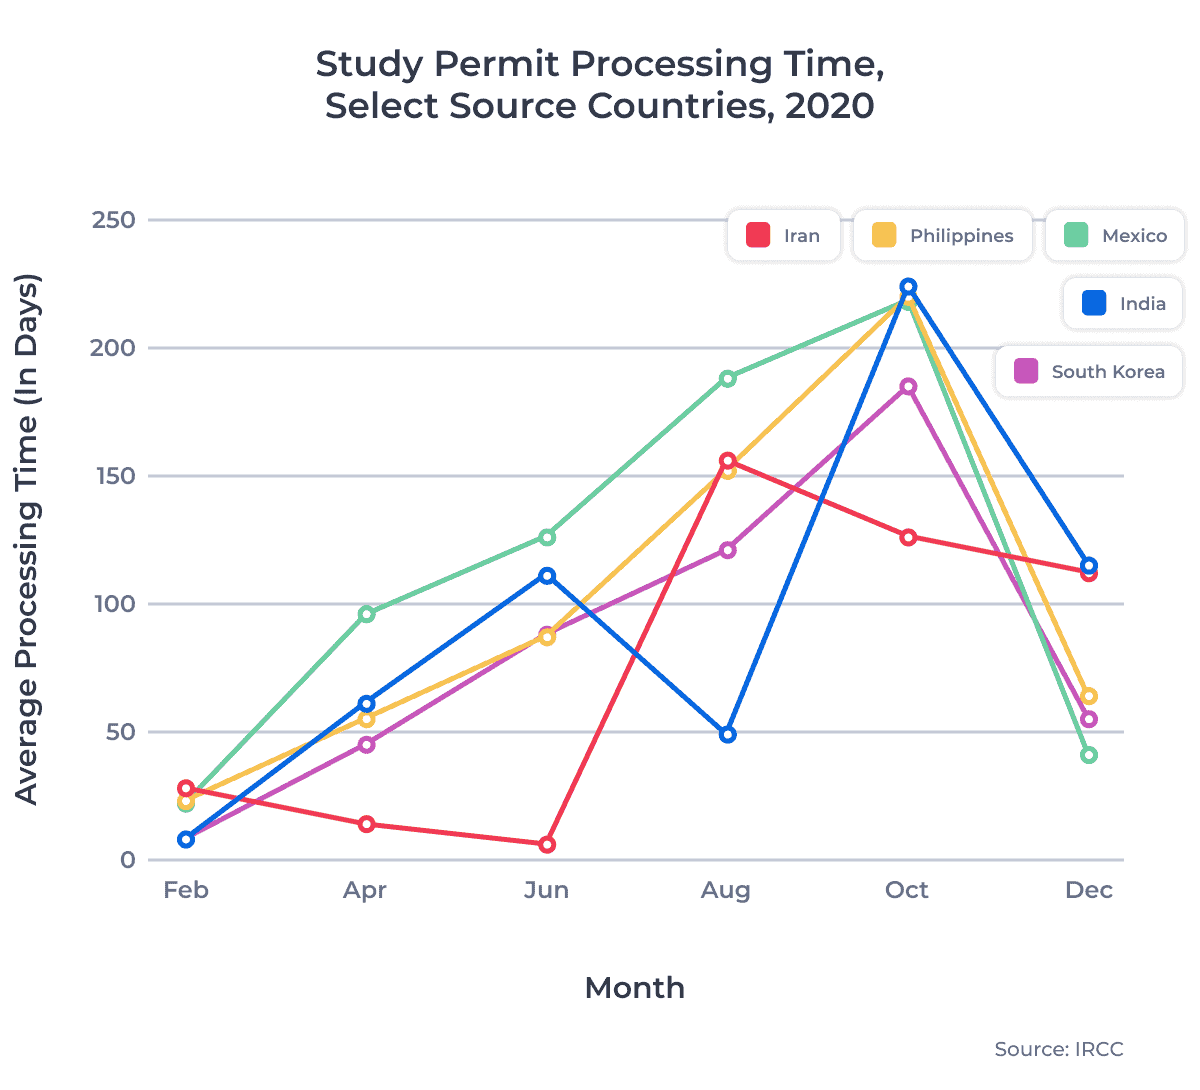 Study Permit Processing Time, Select Source Countries, 2020